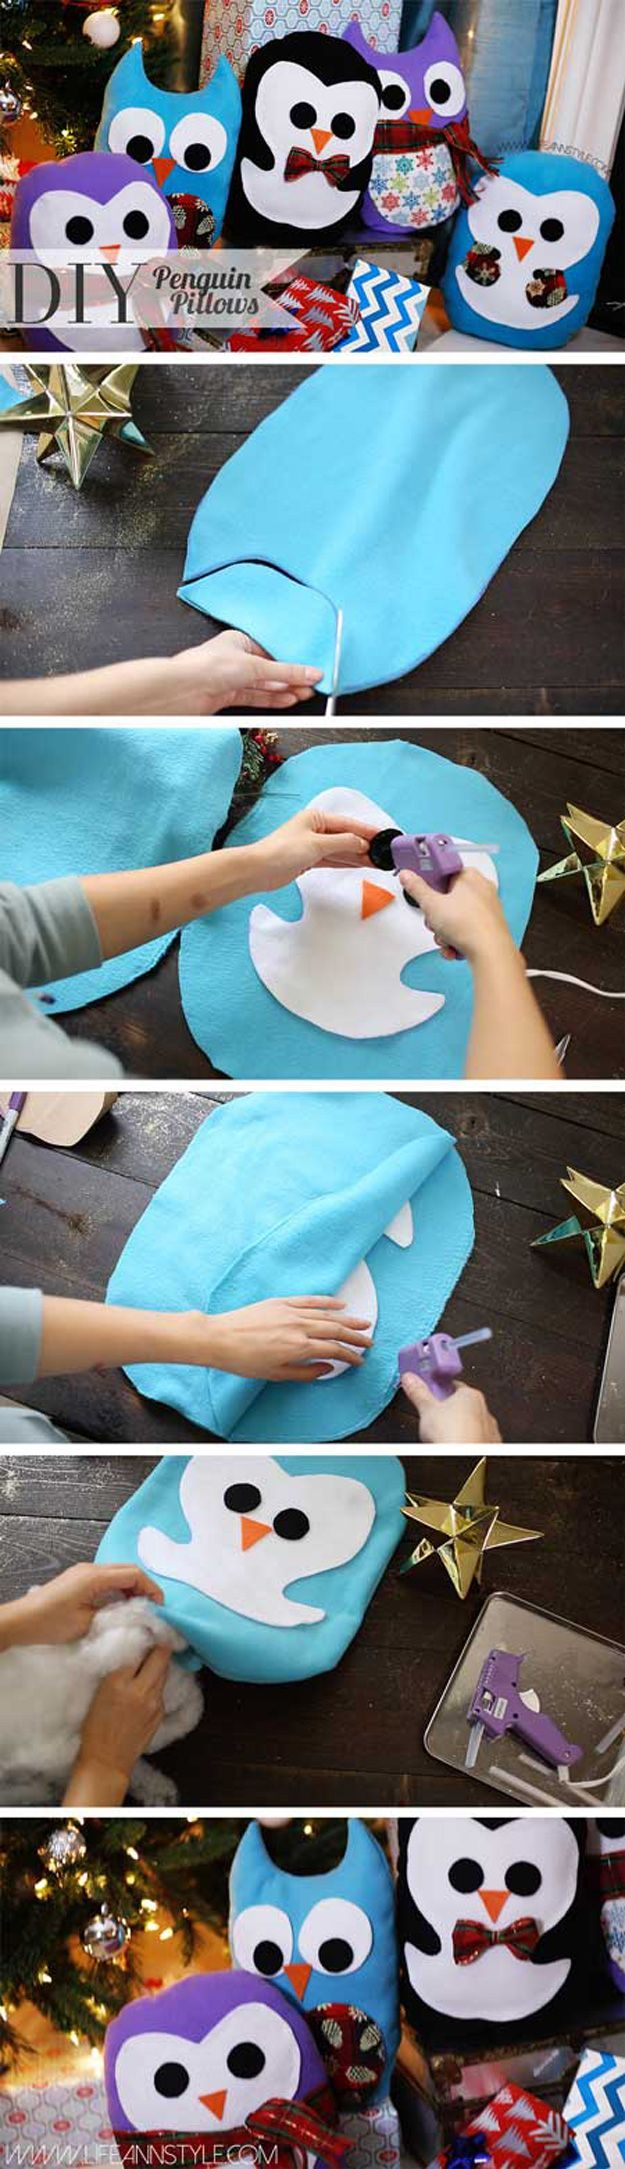 17 adorable DIY pillow ideas to sew yourself! These cute little penguins would make great winter decorations or would also appropriate for a child's bedroom.